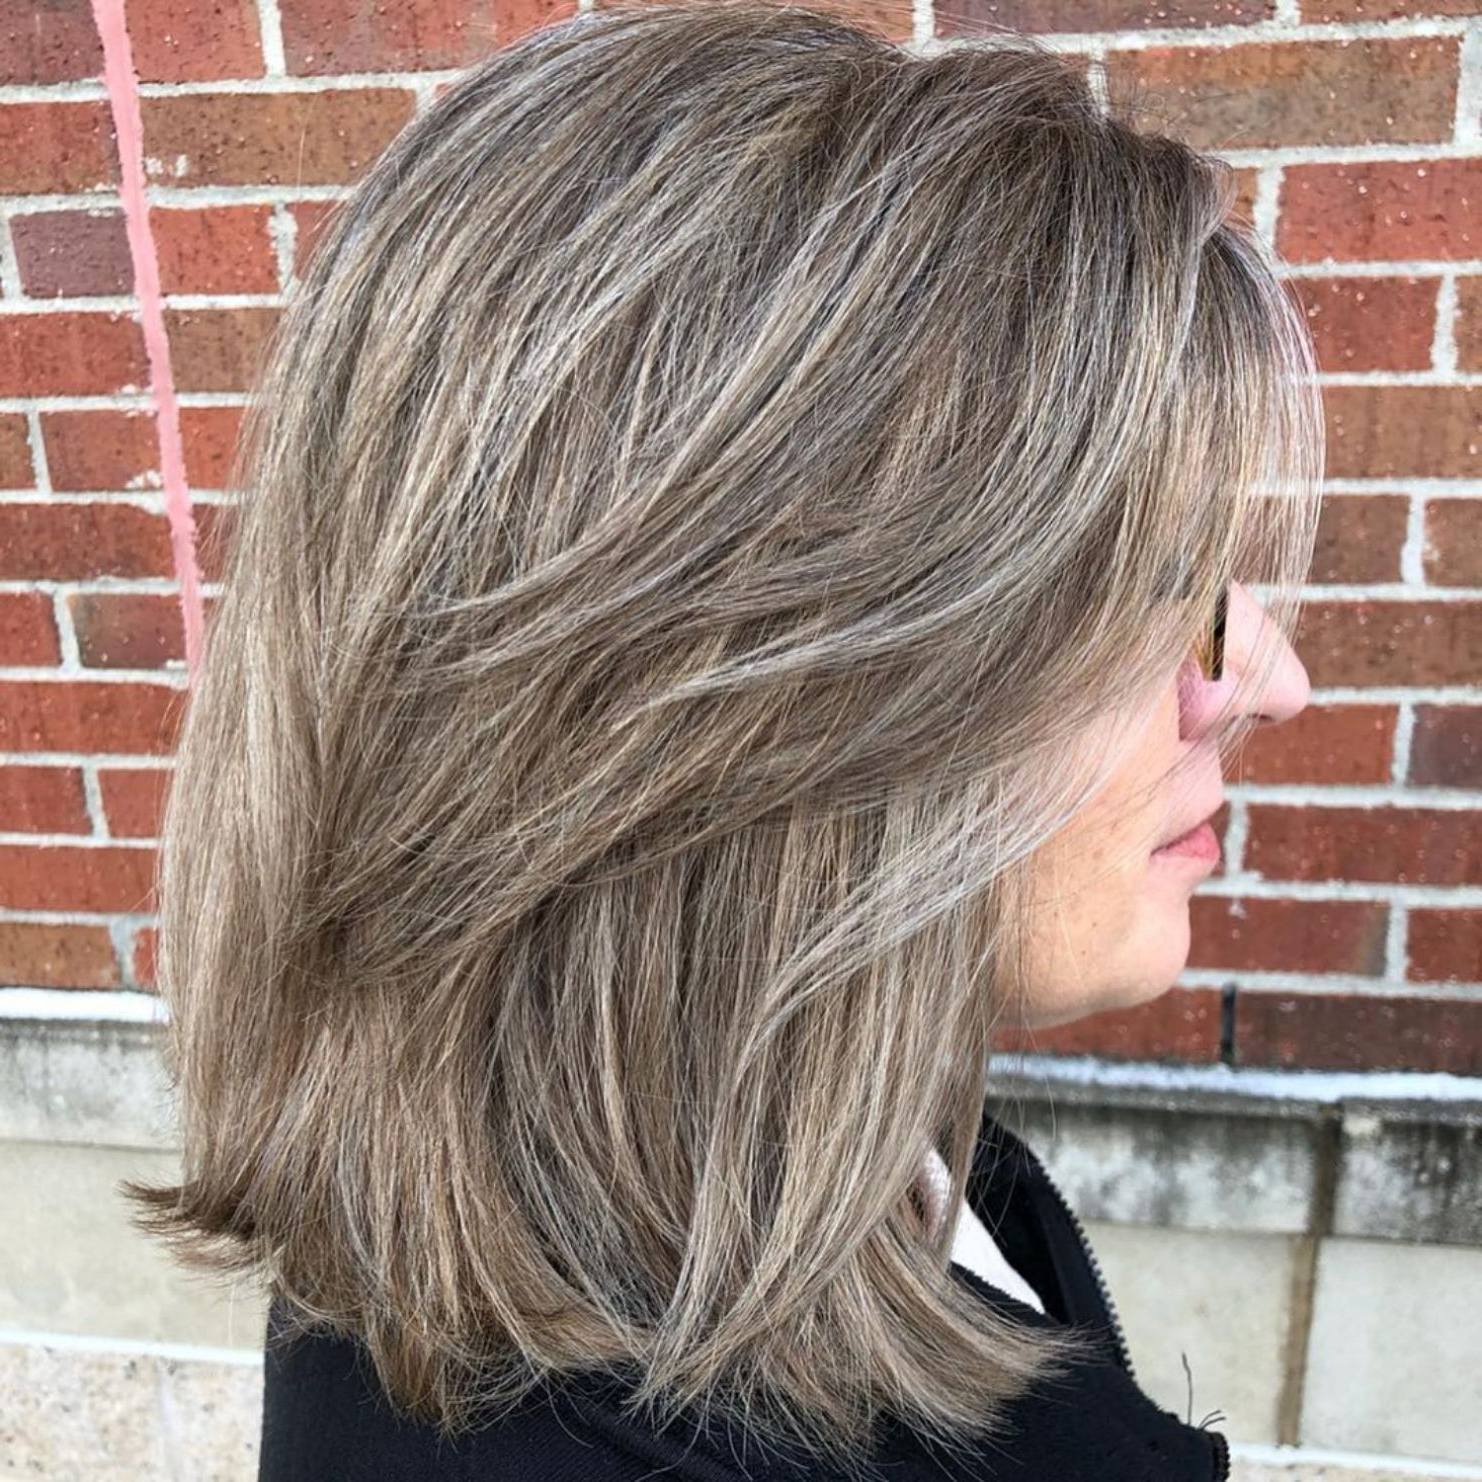 Most Recent Thick Feathered Blonde Lob Hairstyles In Pin On Shoulder Length Ideas (View 16 of 20)